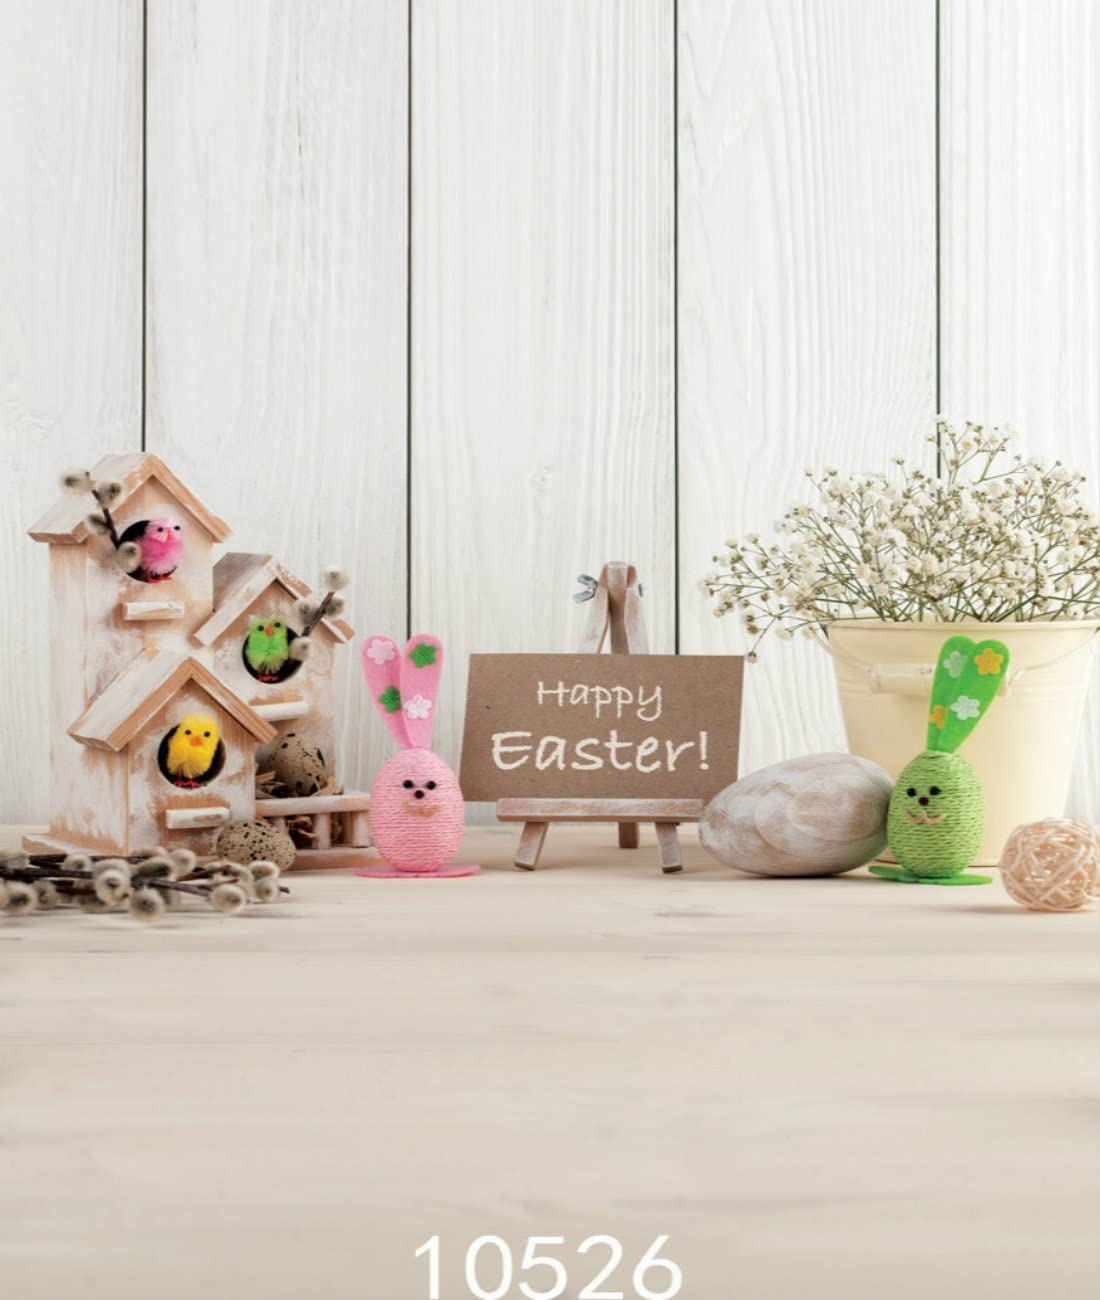 4X6FT-Childrens Happy Easter cartoon Portrait Photography Backdrops Wood Photo Studio Background